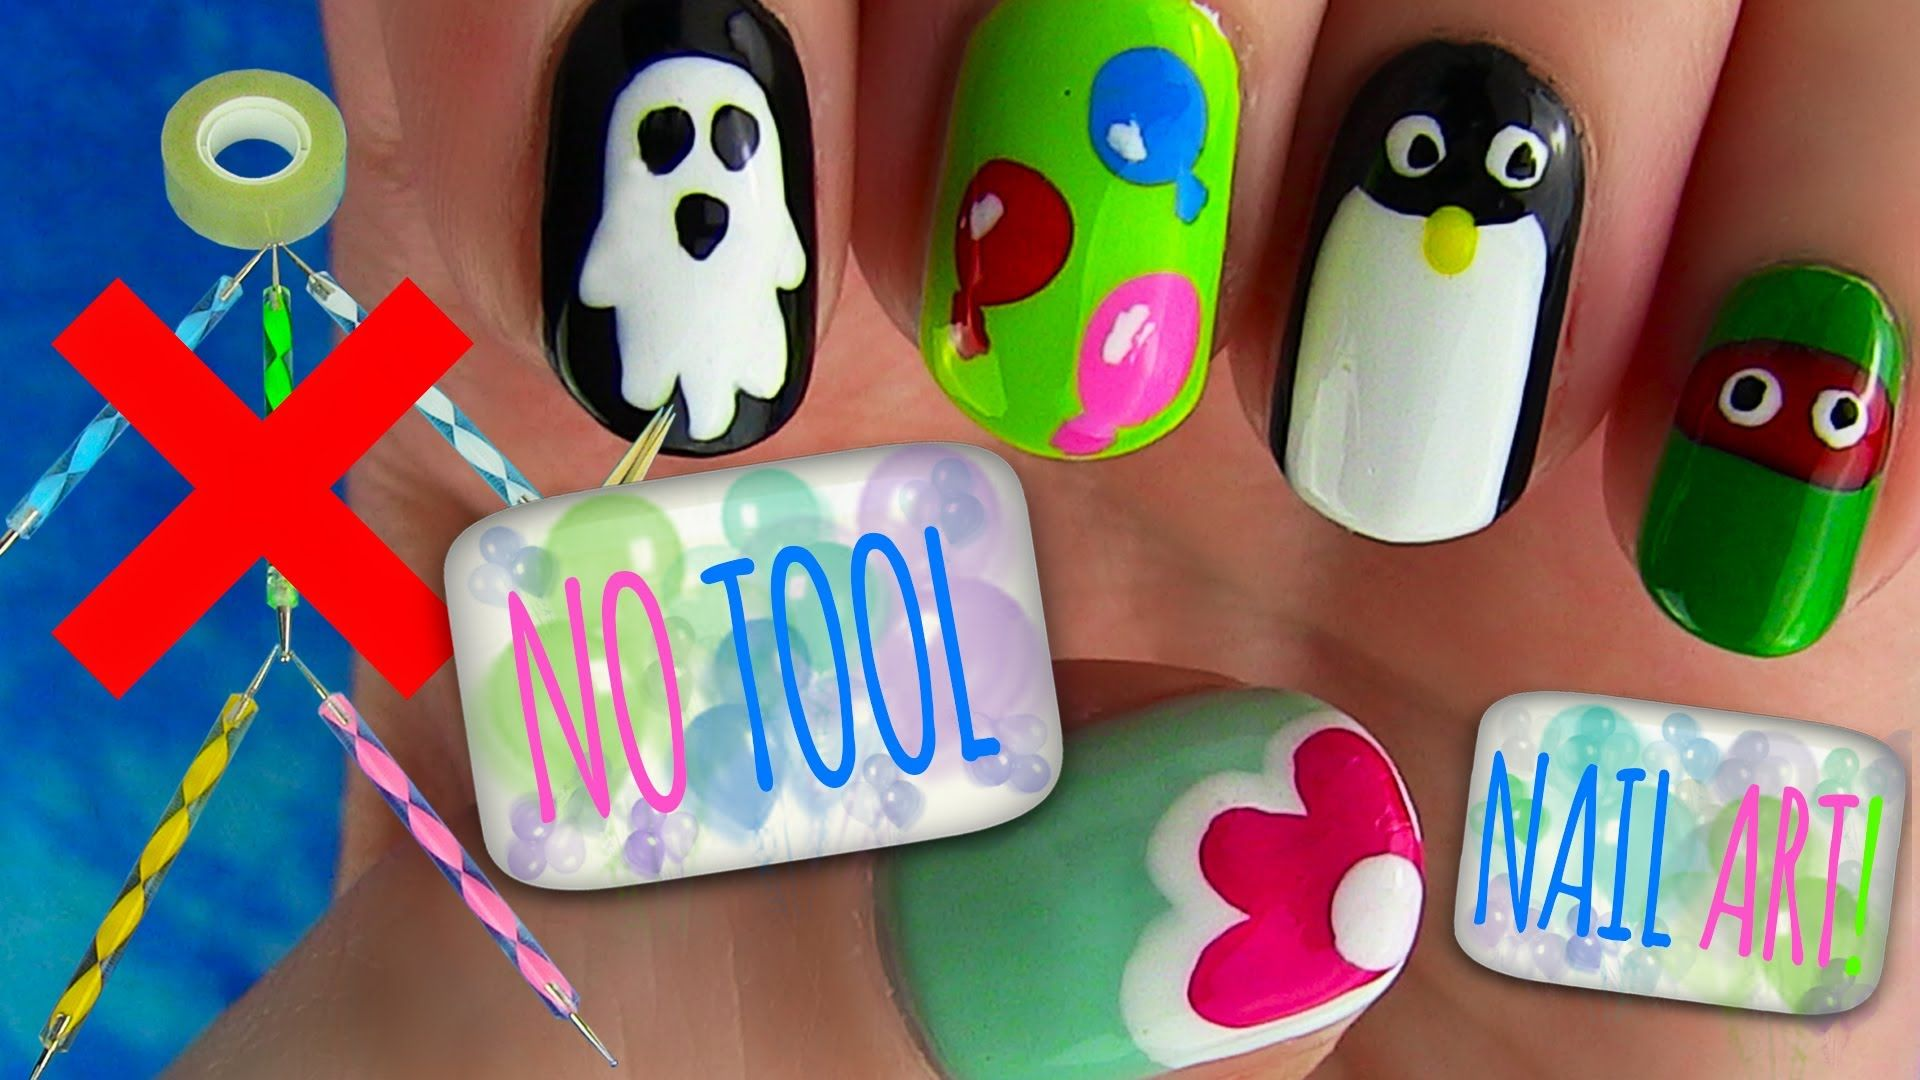 no tools nail art tutorial i show 5 easy but cute nail art designs - Hot Designs Nail Art Ideas